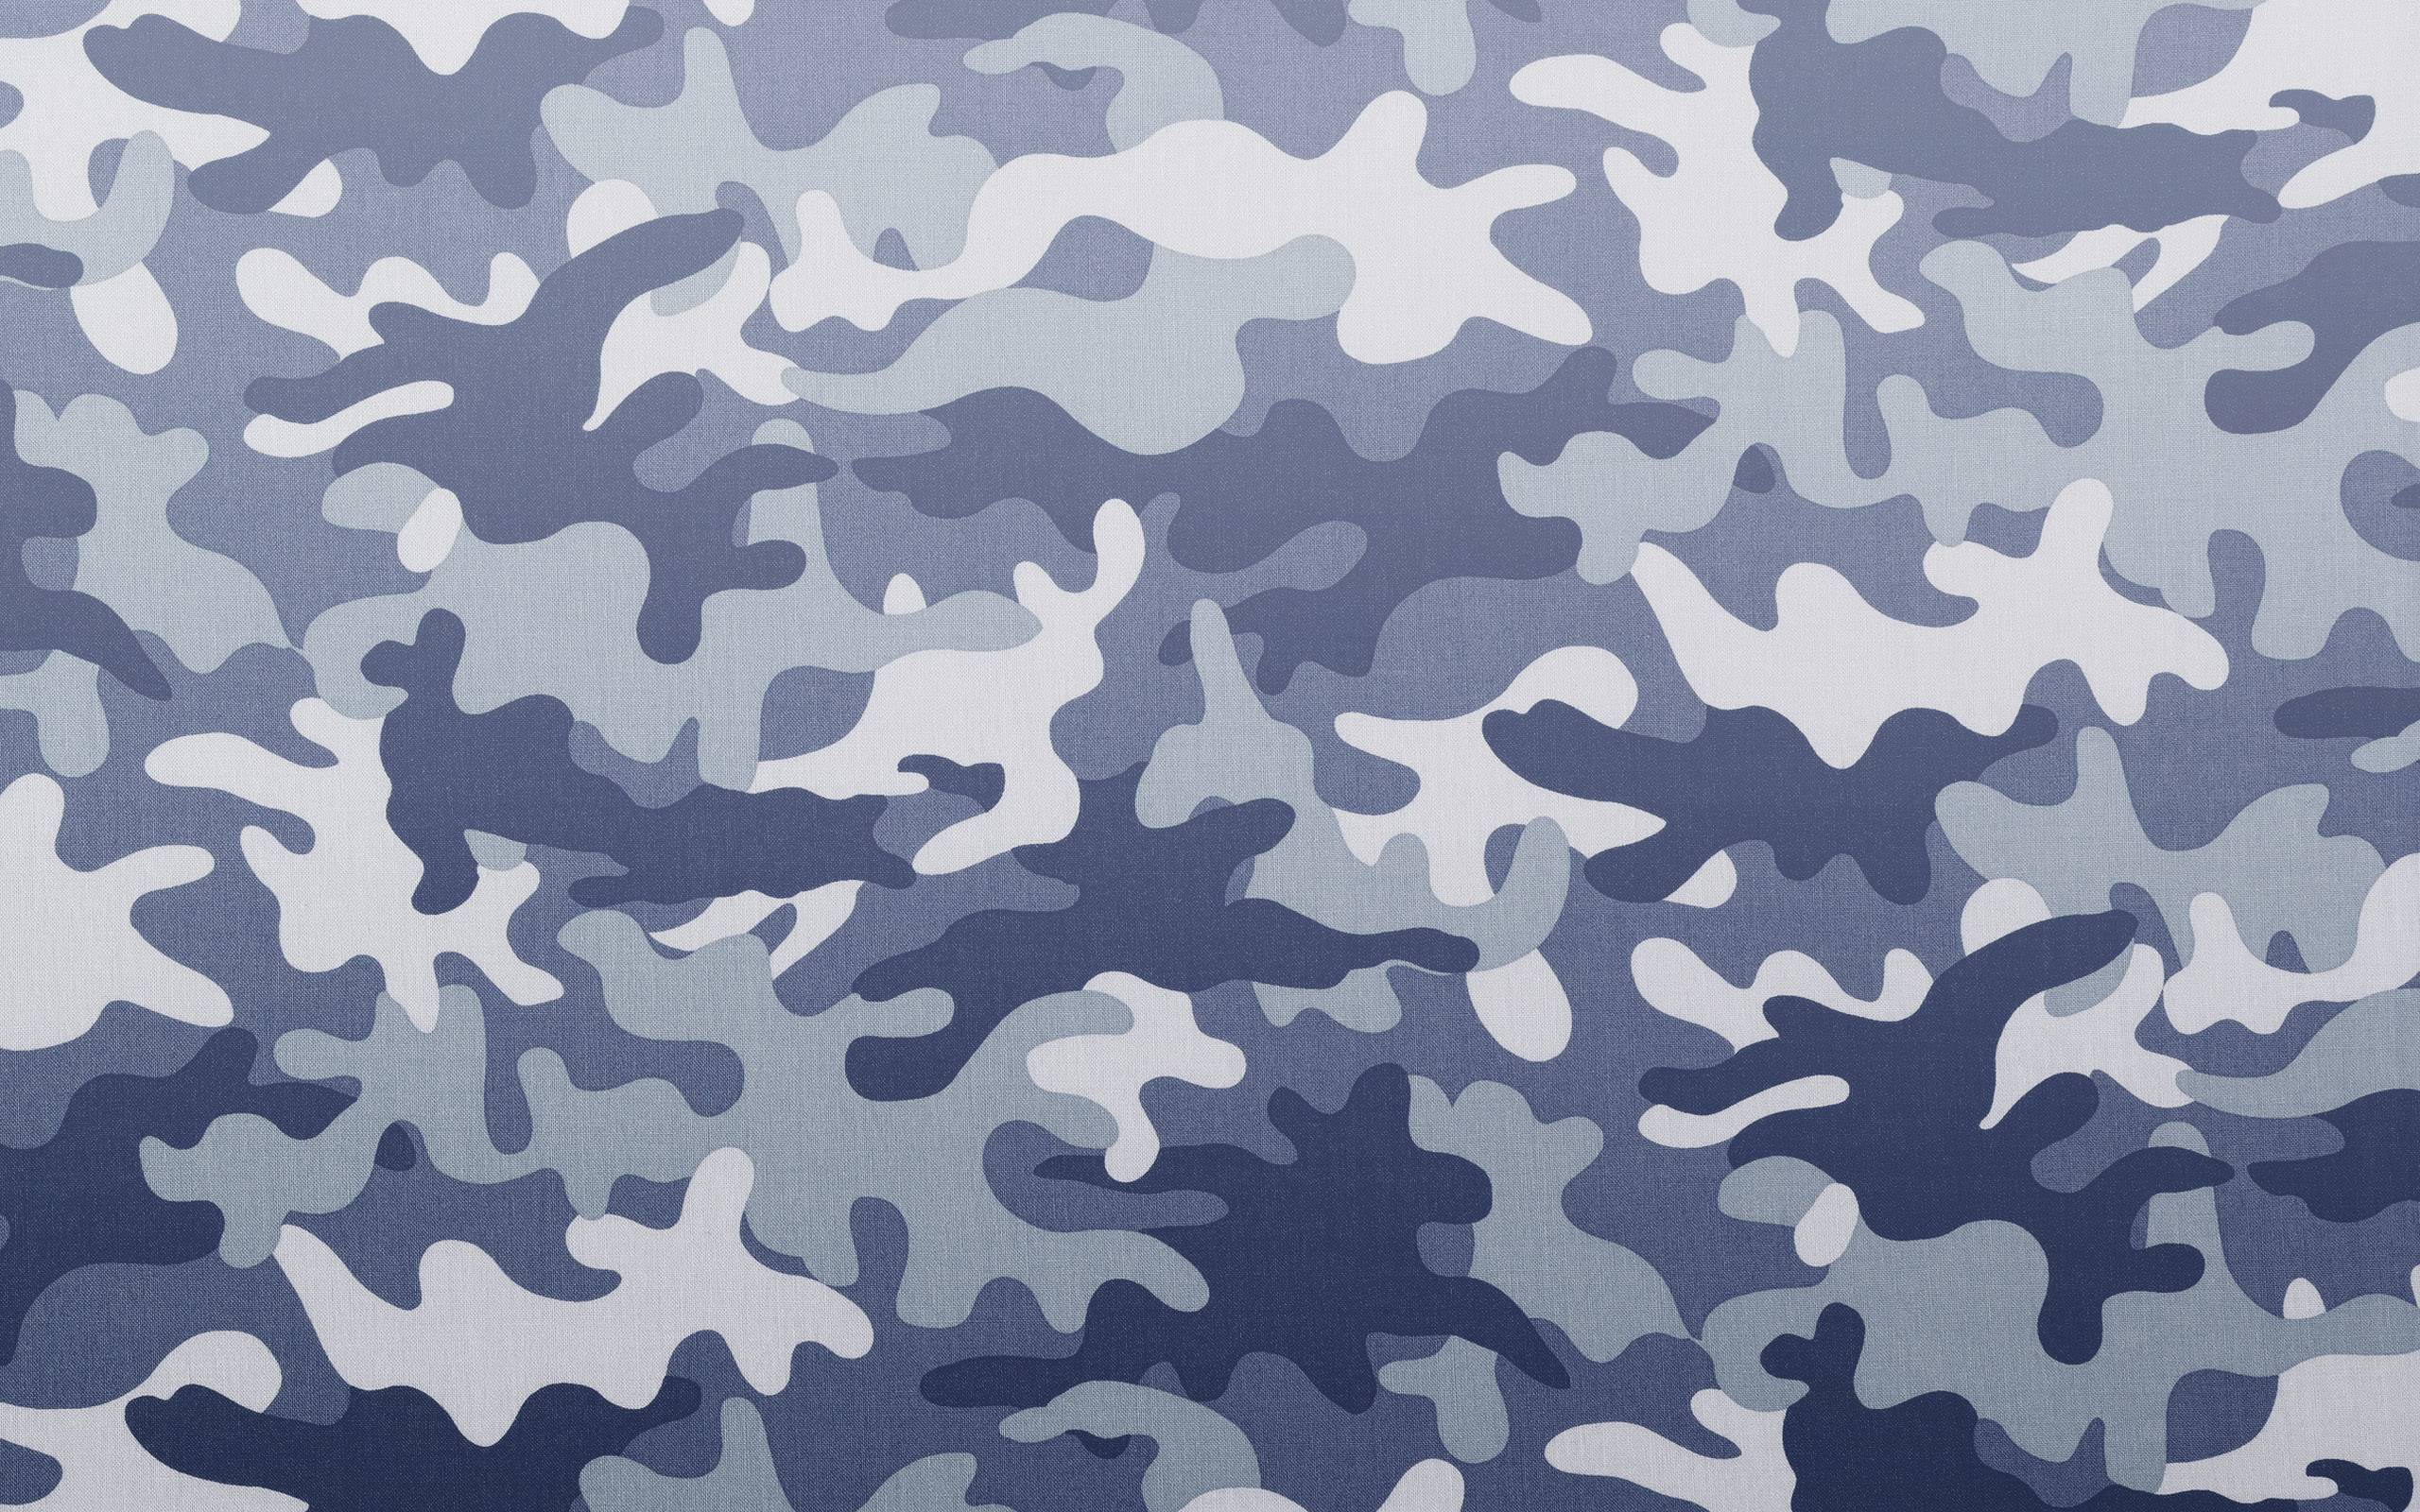 camo desktop wallpaper full screen - photo #7